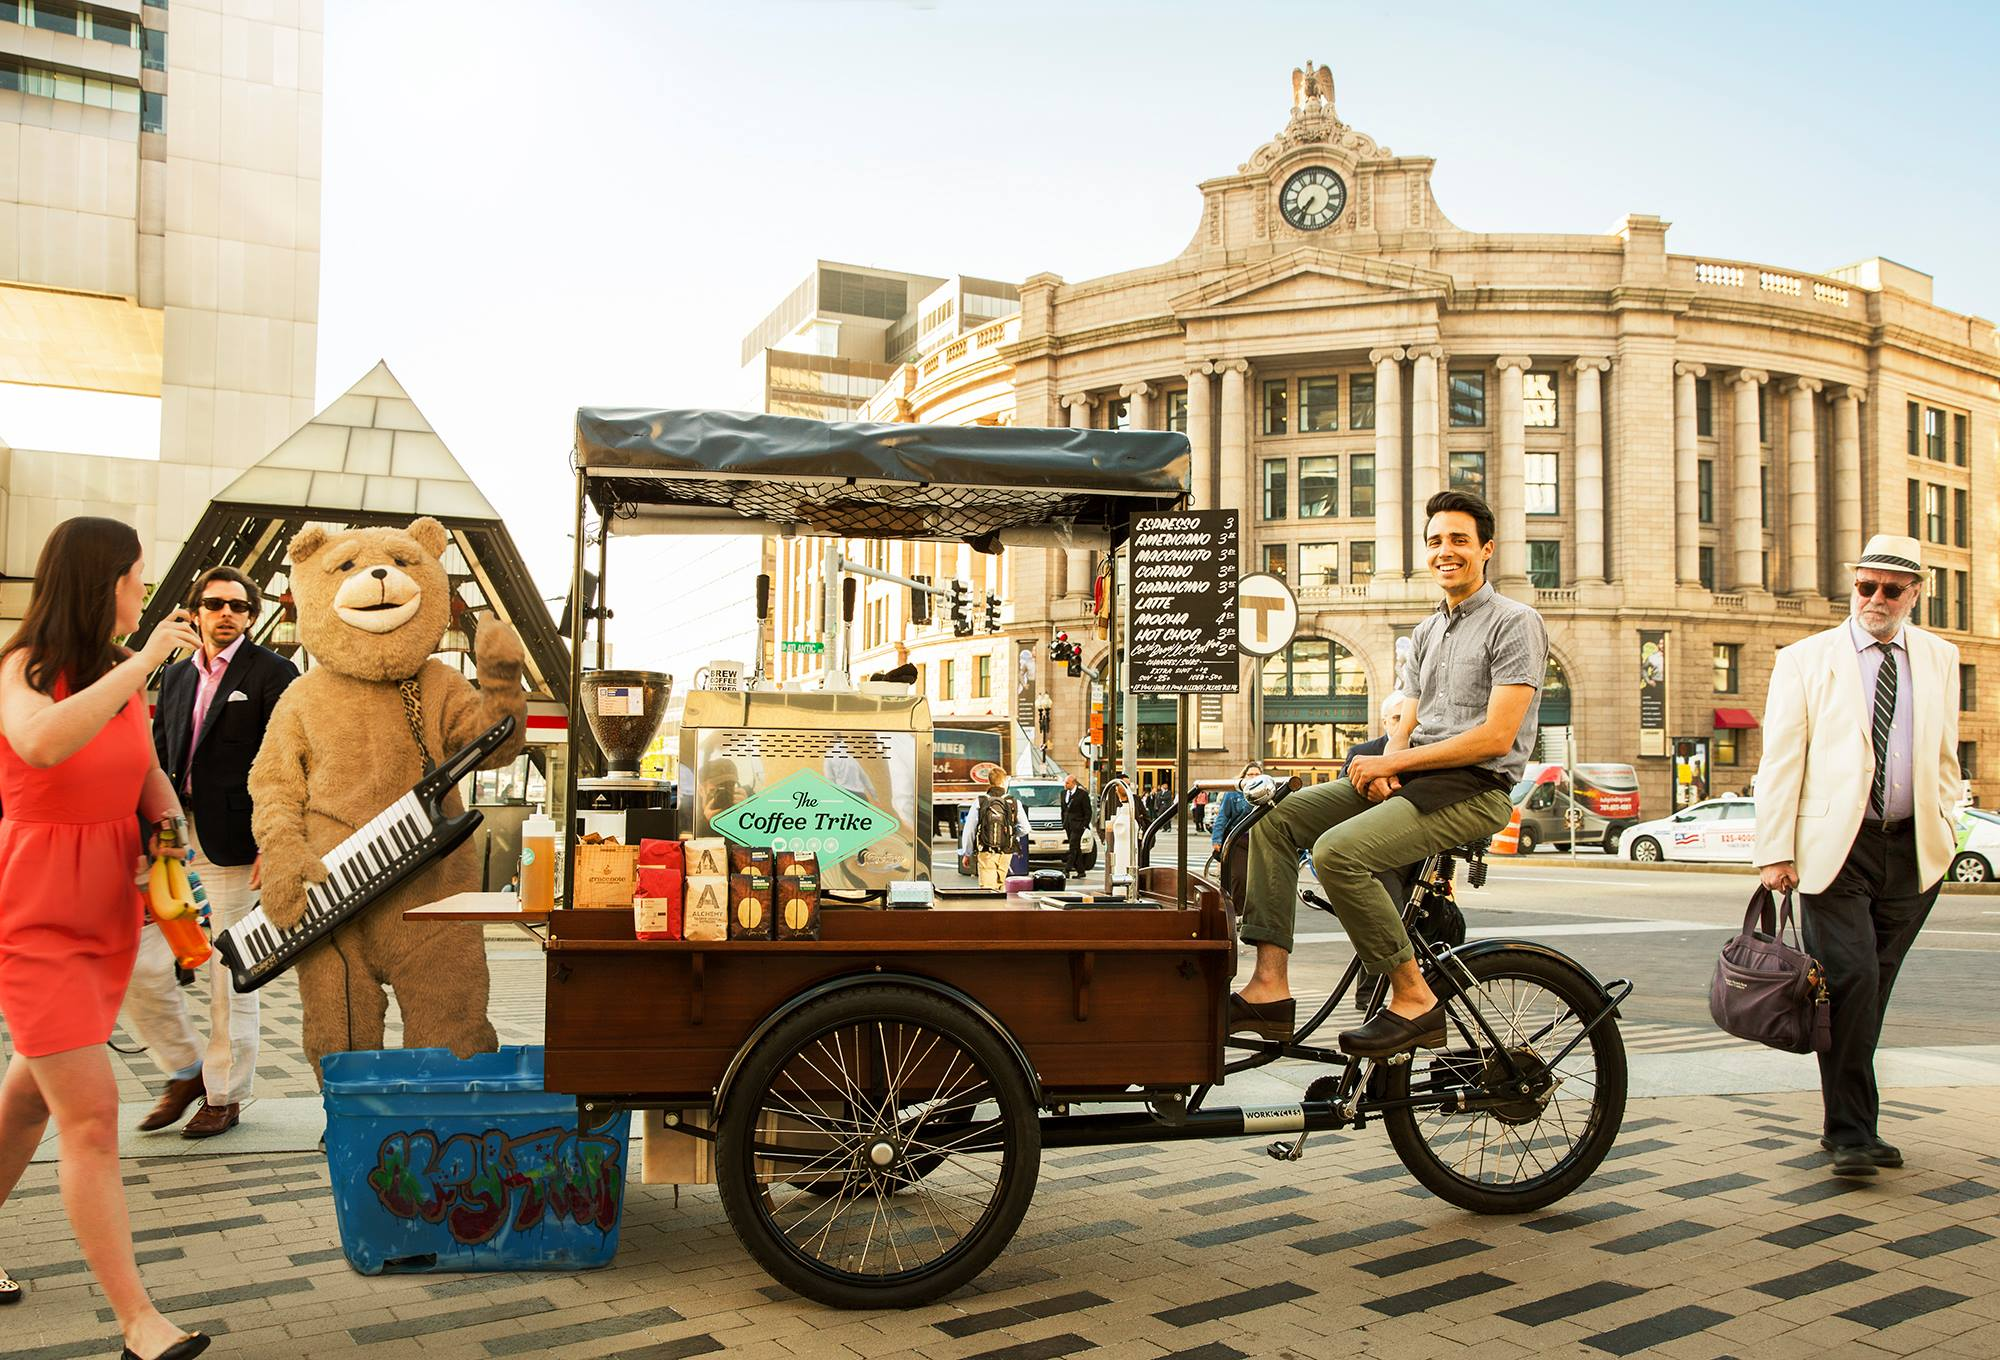 The Coffee Trike Is for Sale